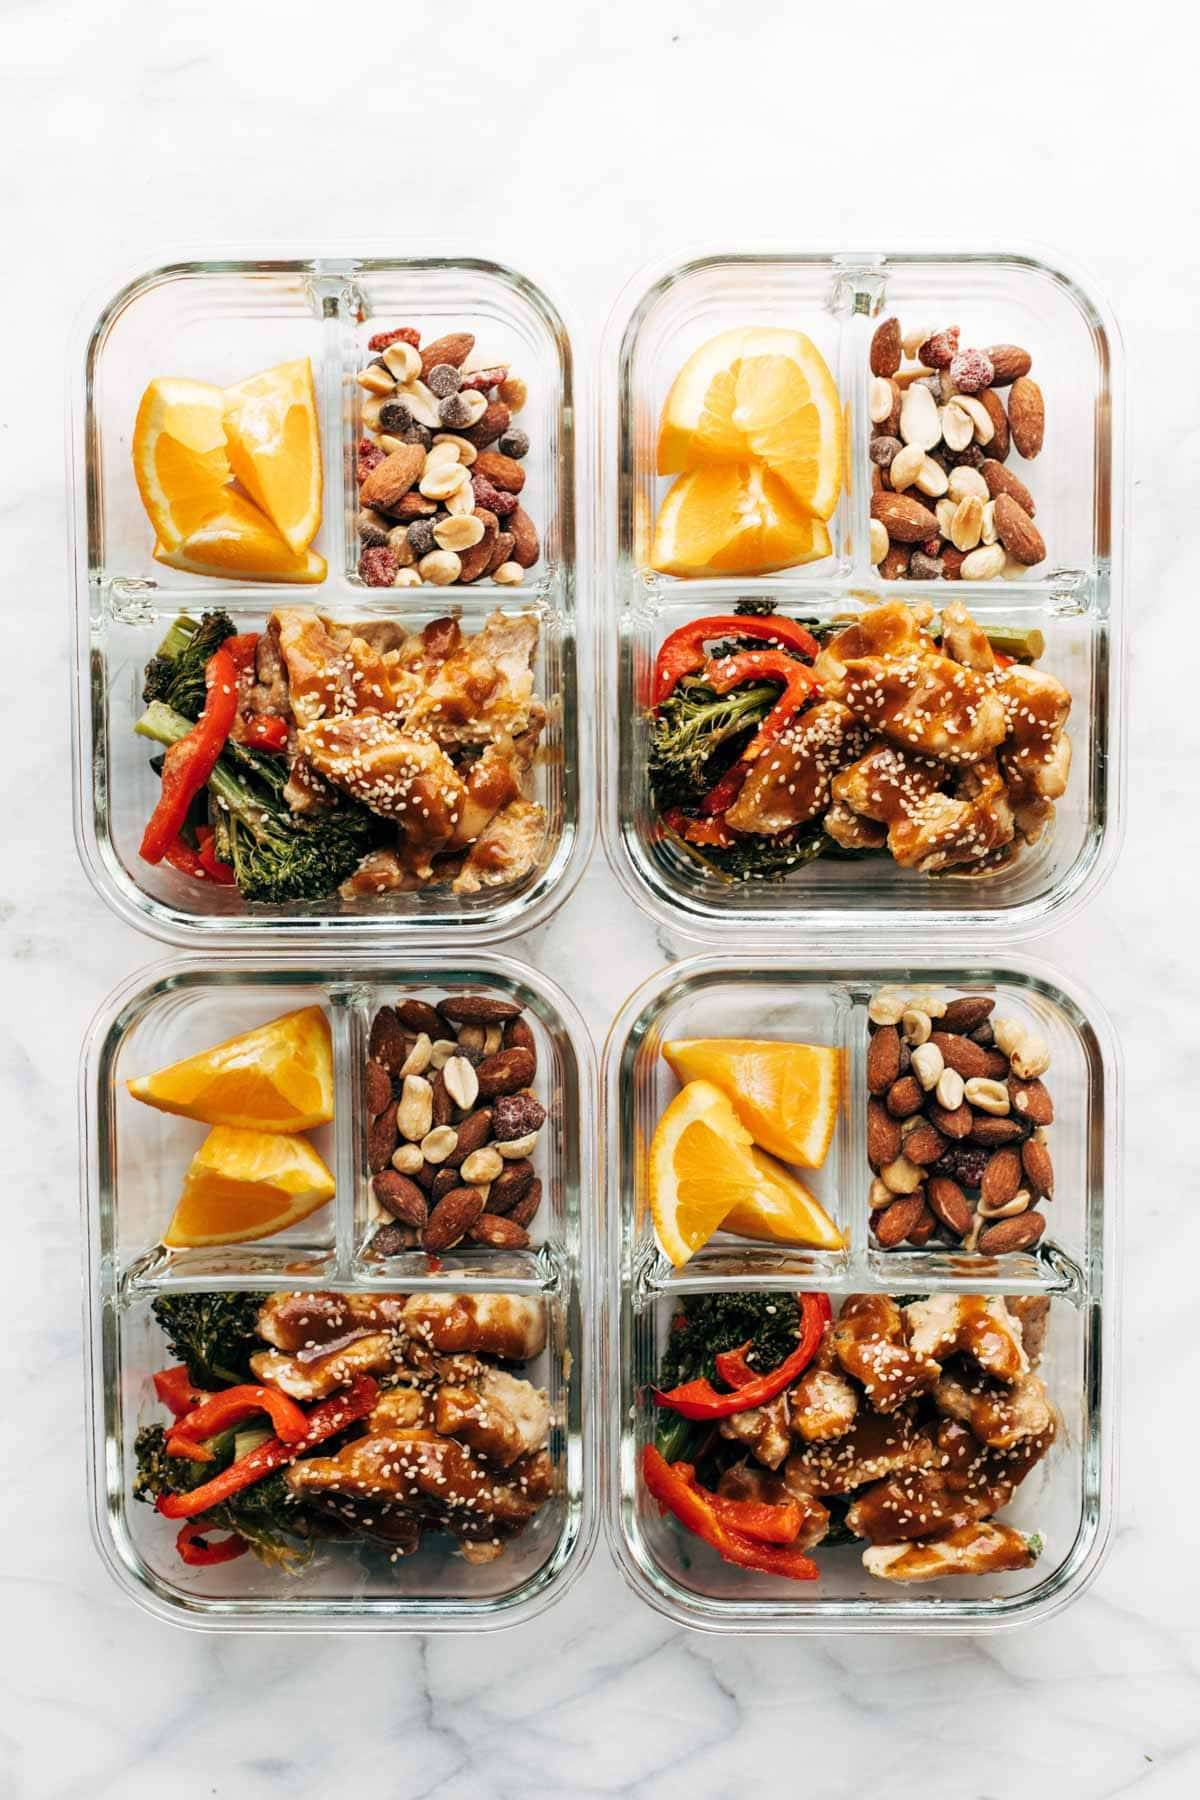 Garlic Ginger Chicken and Broccoli in meal prep containers.